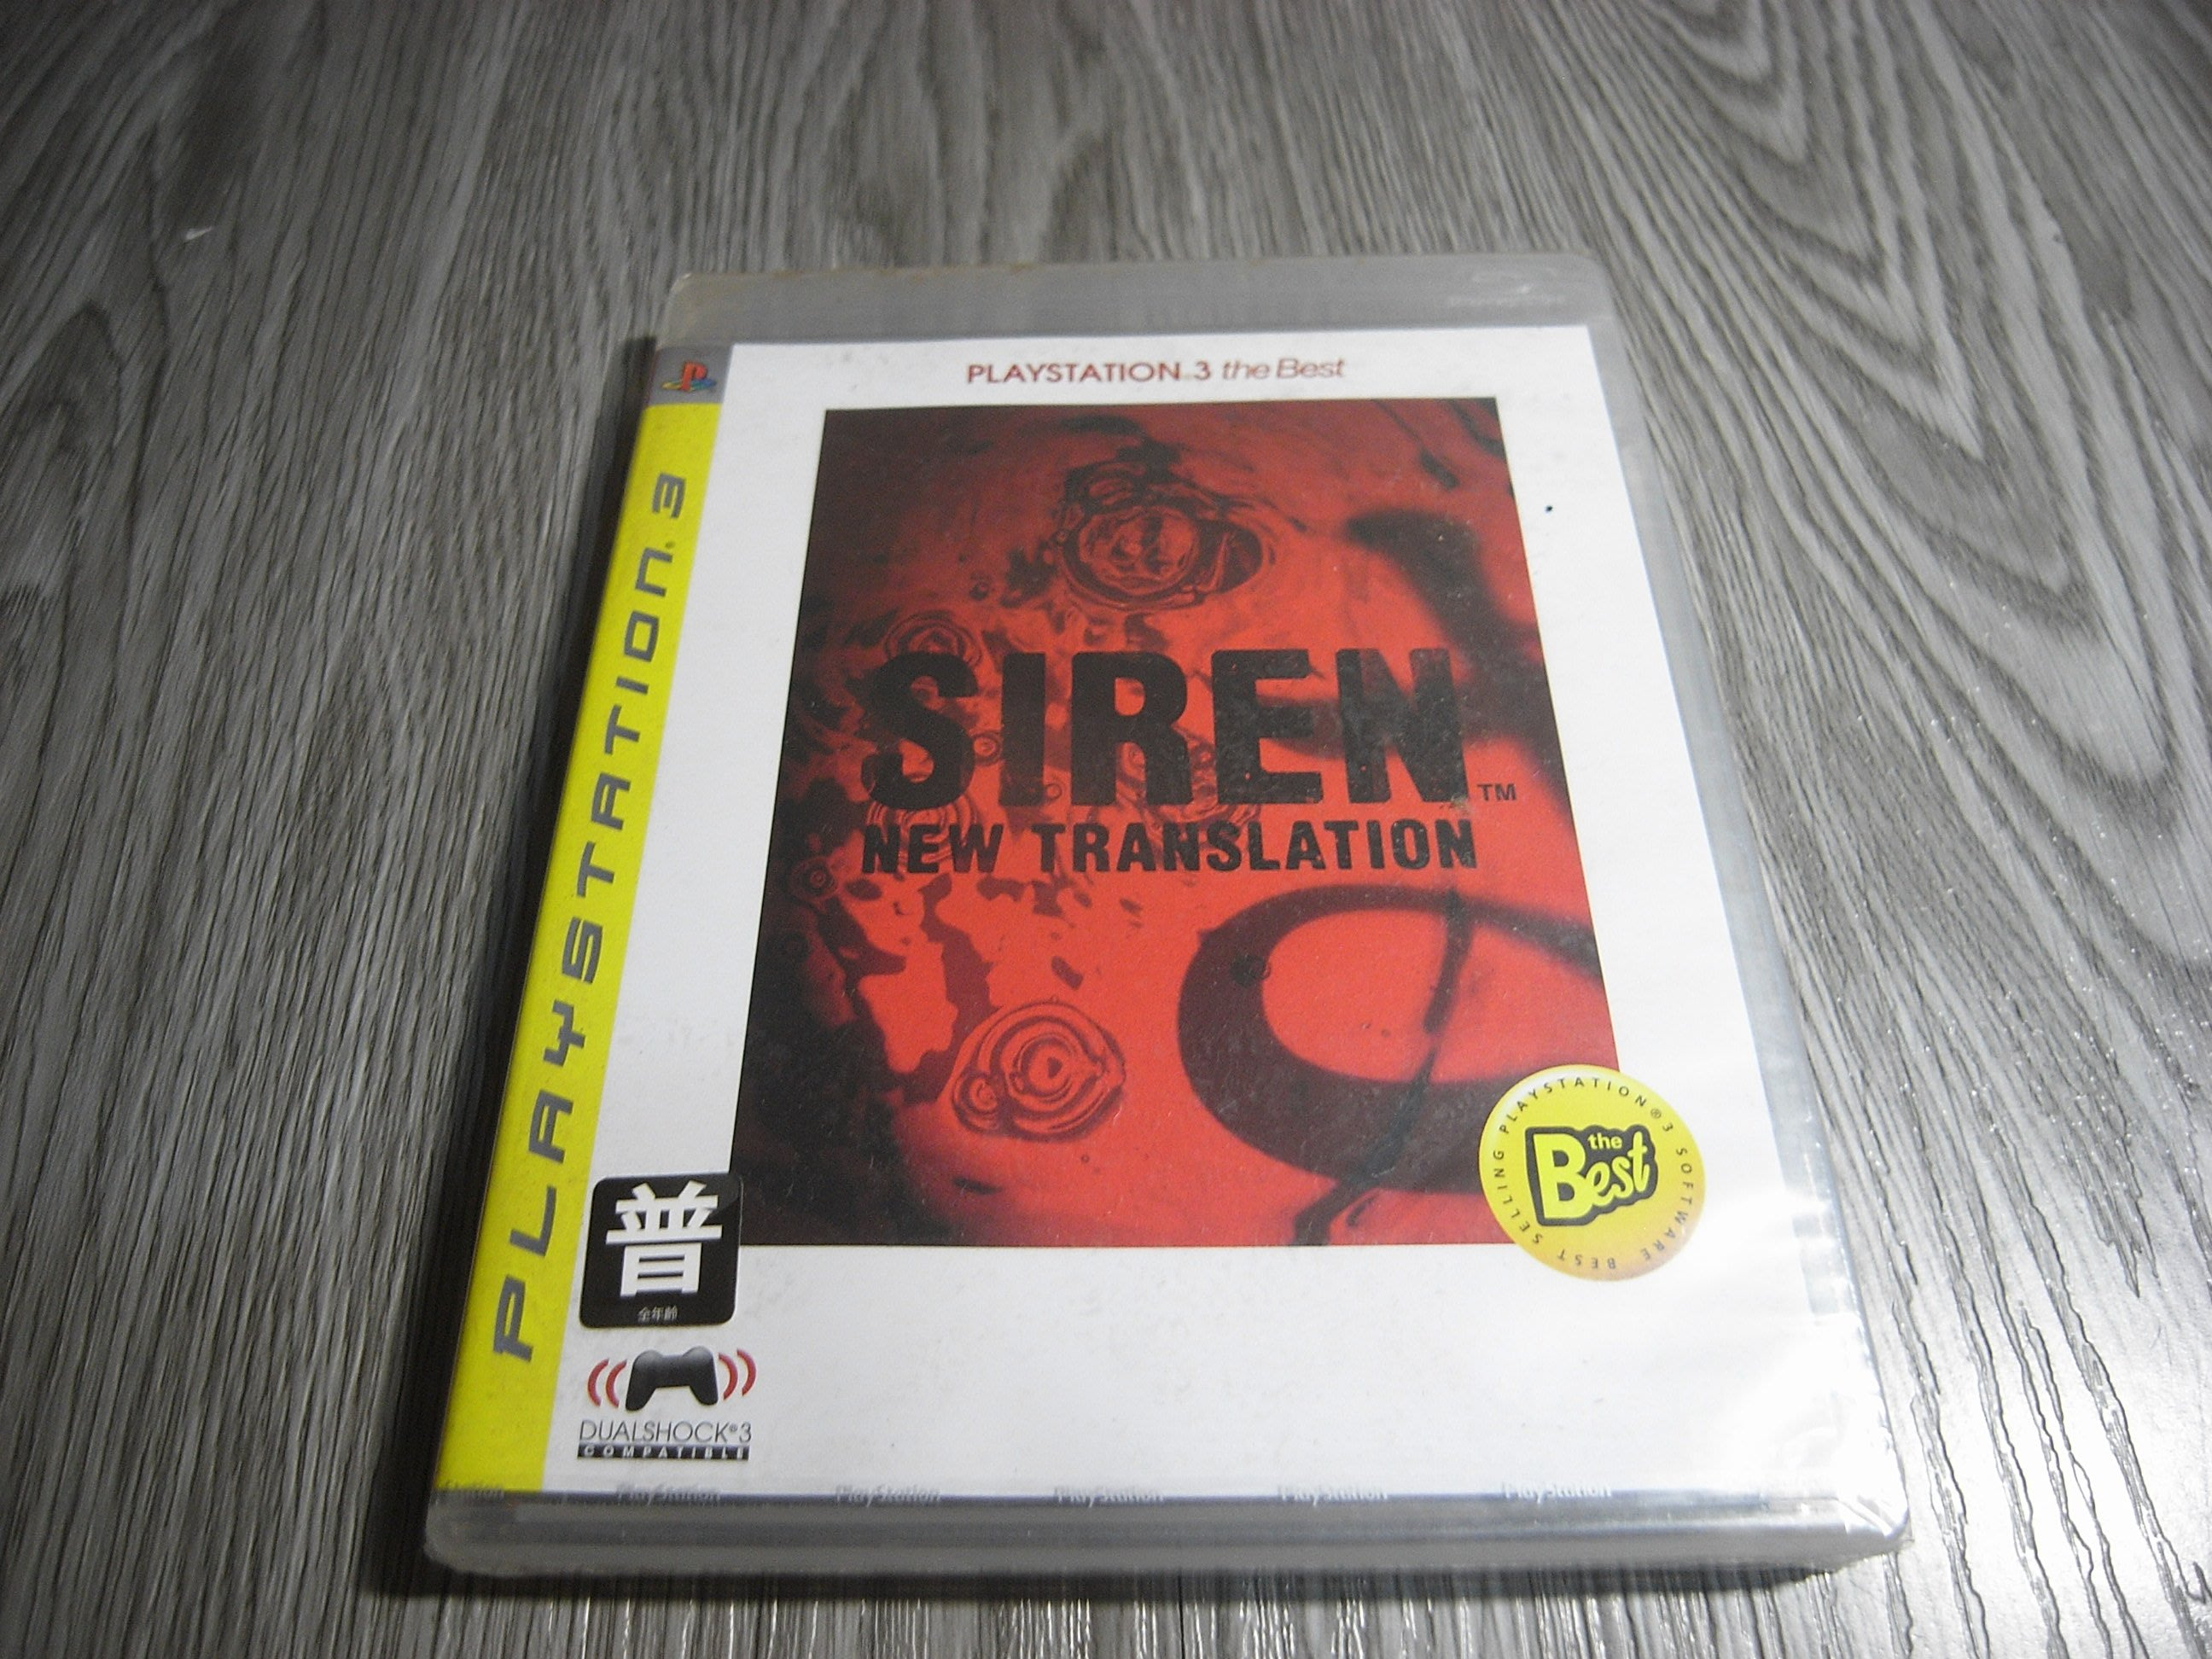 PS3 死魂曲 SIREN 新譯 SIREN: NEW TRANSLATION PS3 遊戲片